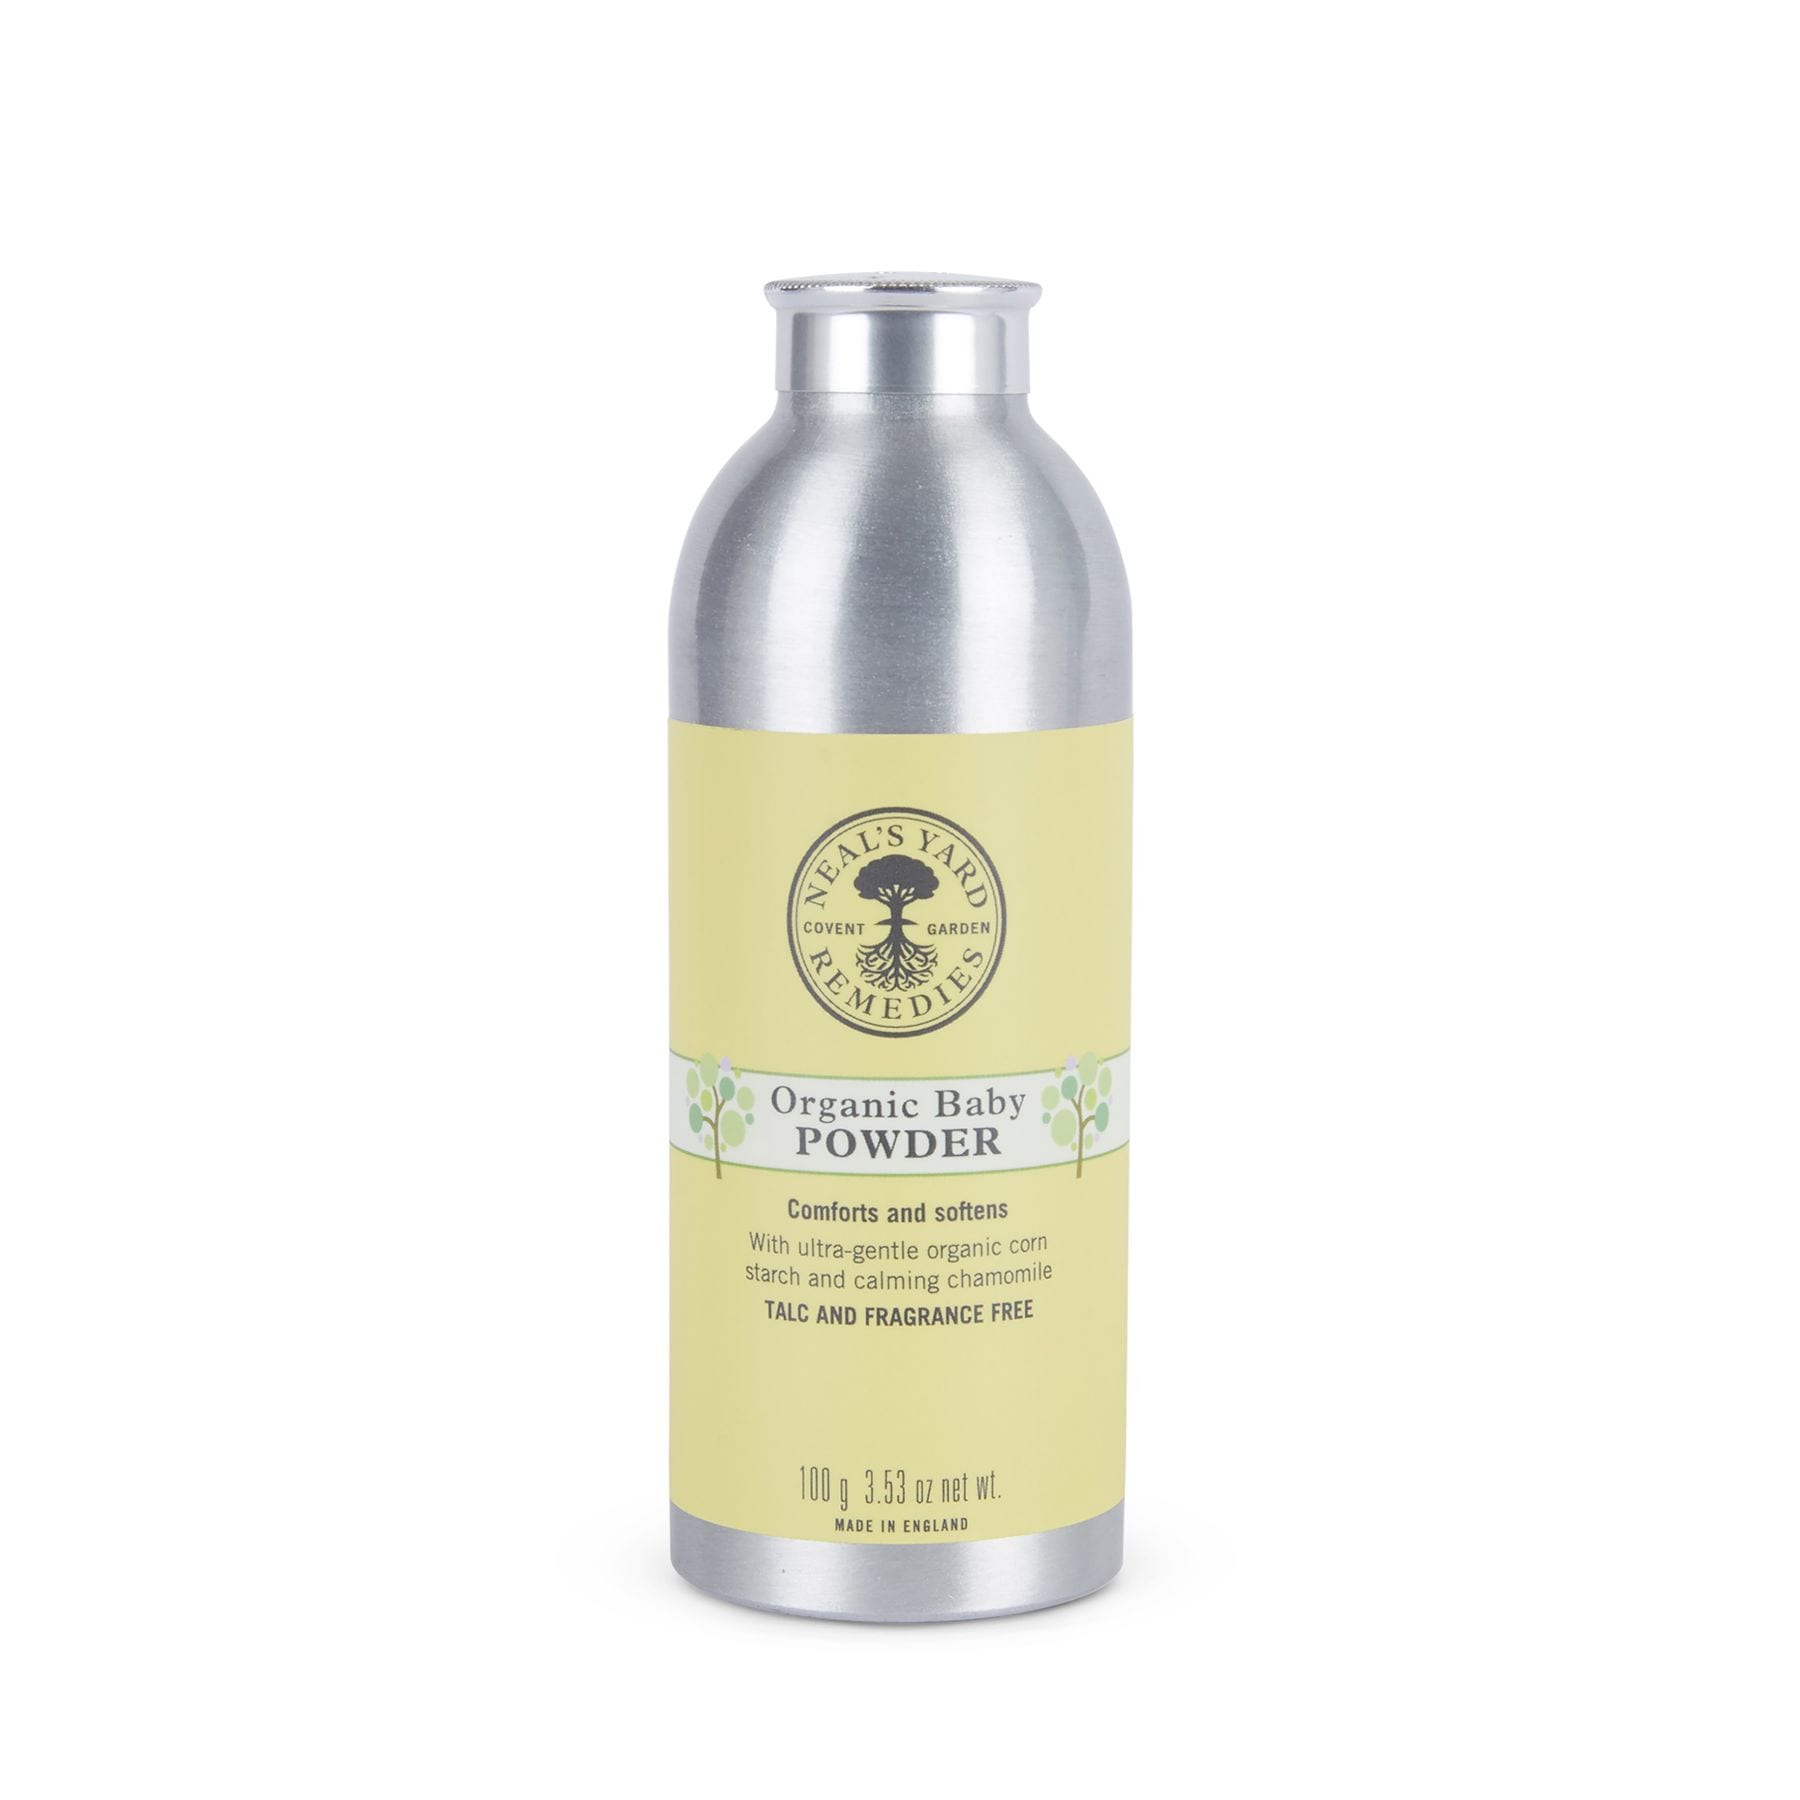 Neals Yard Organic Baby Powder